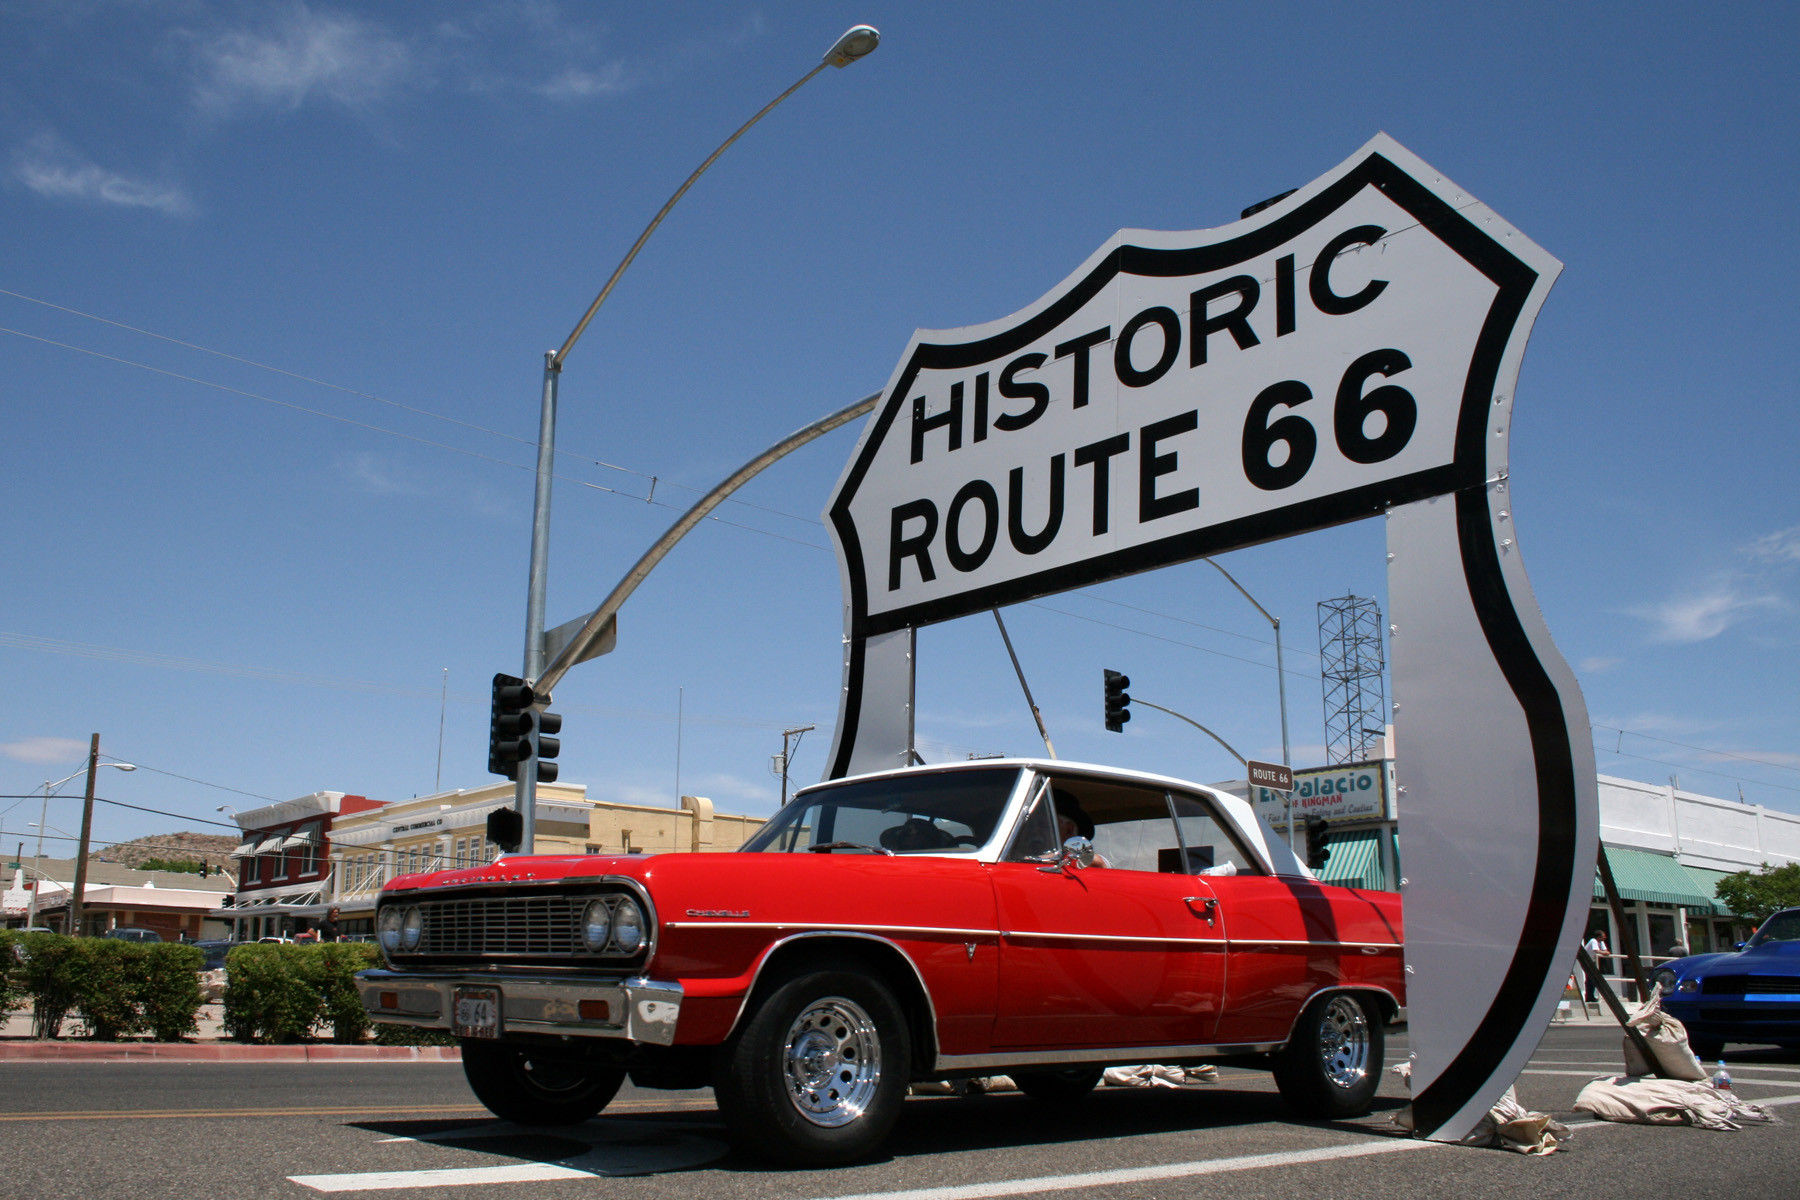 32nd annual route 66 fun run®